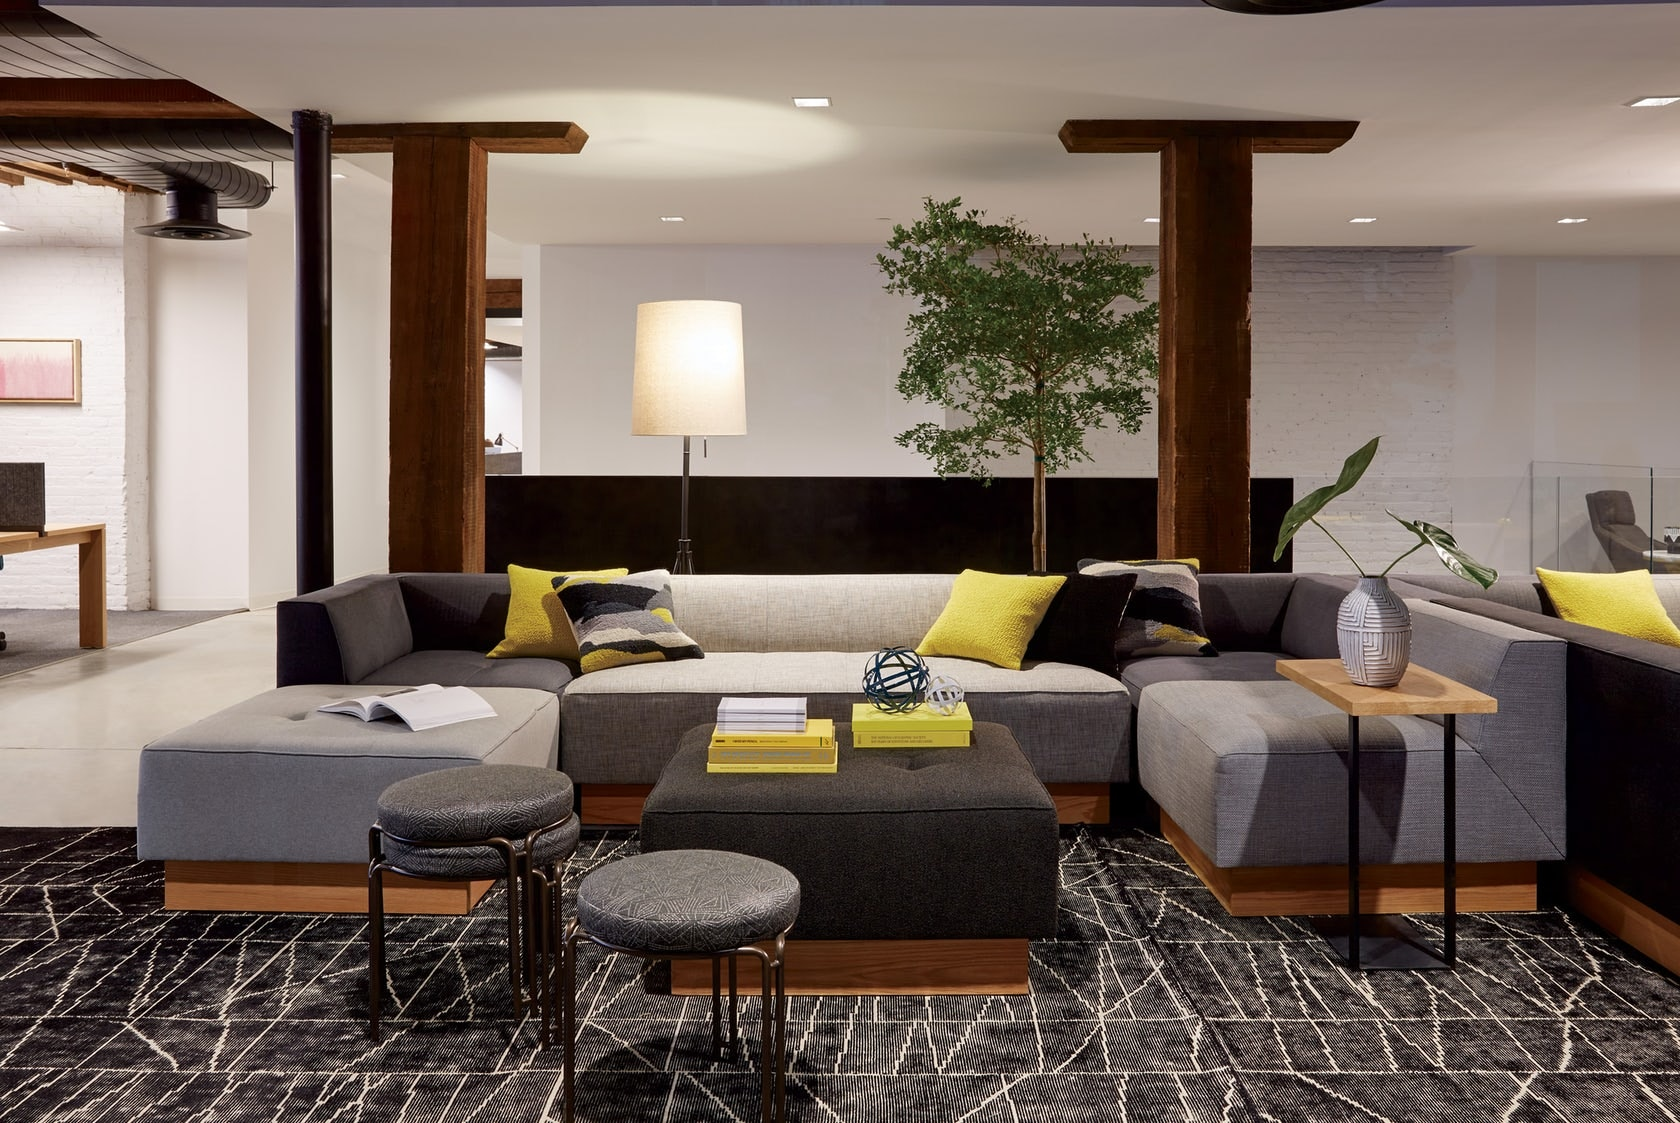 West Elm Also Wants The Modern Employee To Have A Choice In The Way They  Work. Designing Closed Off, As Well As Open Spaces In A Singular Office, ...